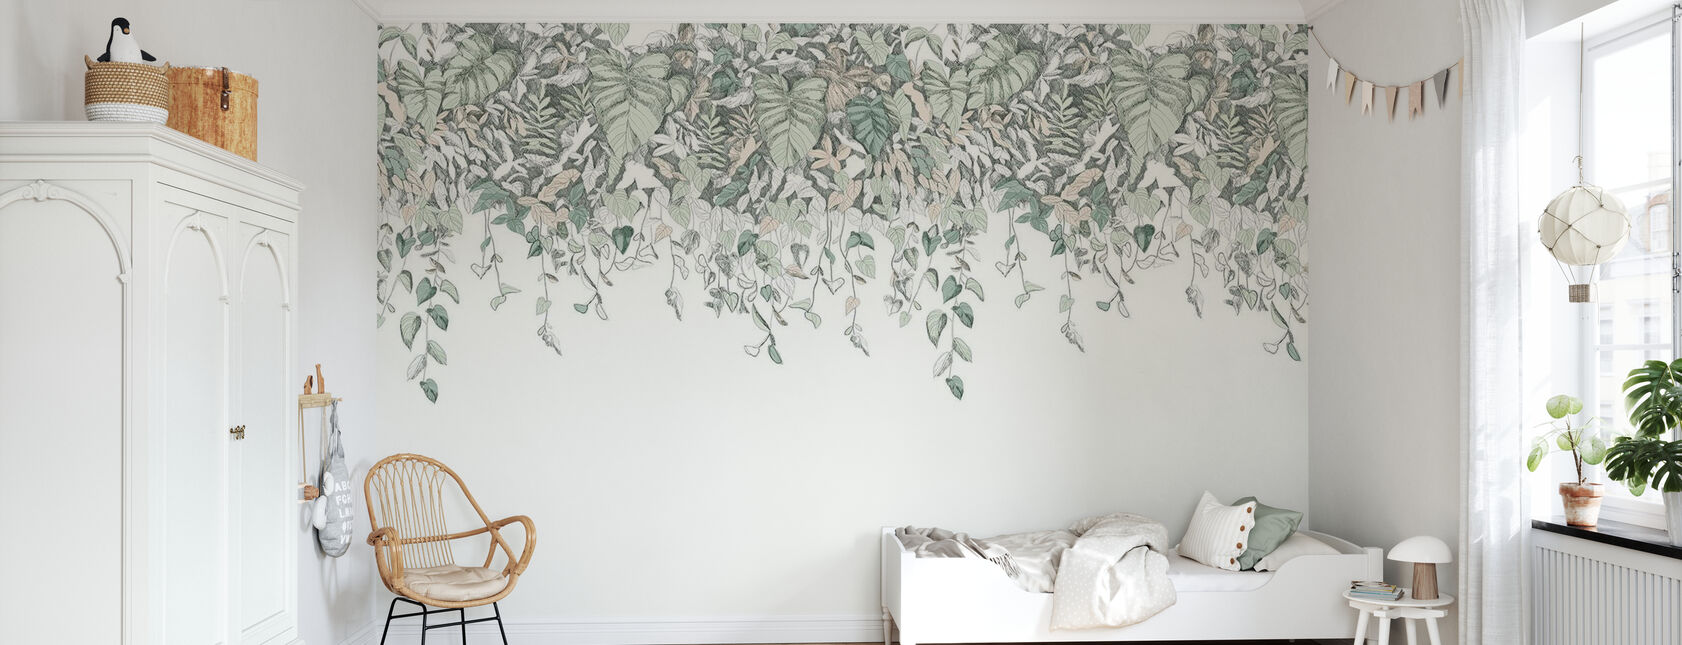 Secret Garden Upside Down - Green - Wallpaper - Kids Room